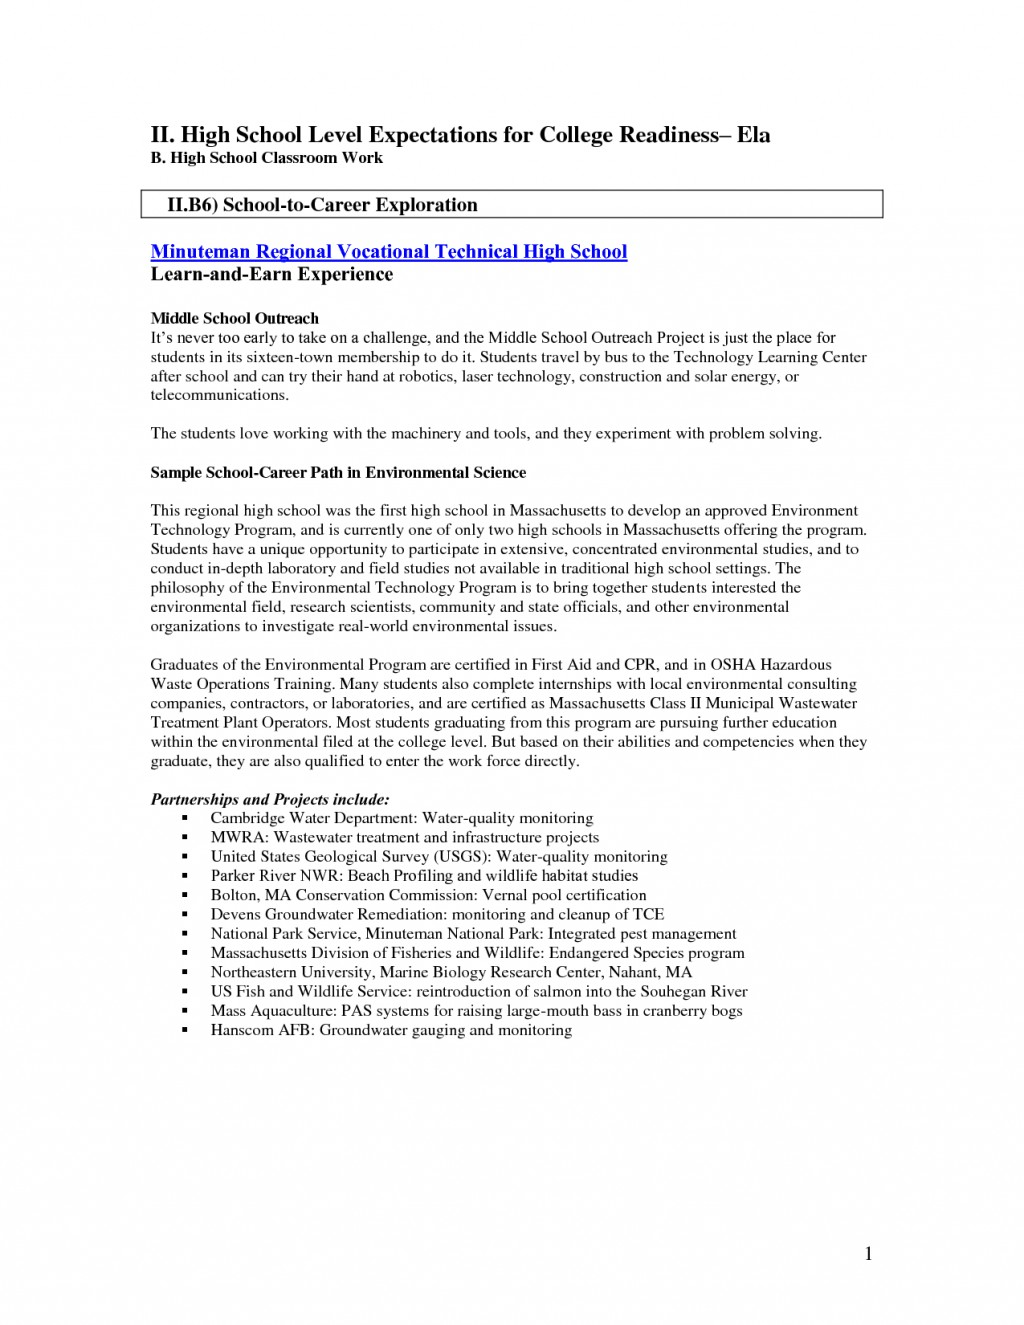 009 Middle School Research Paper Outline Template 435477 Unusual Ideas Topics Topic Large